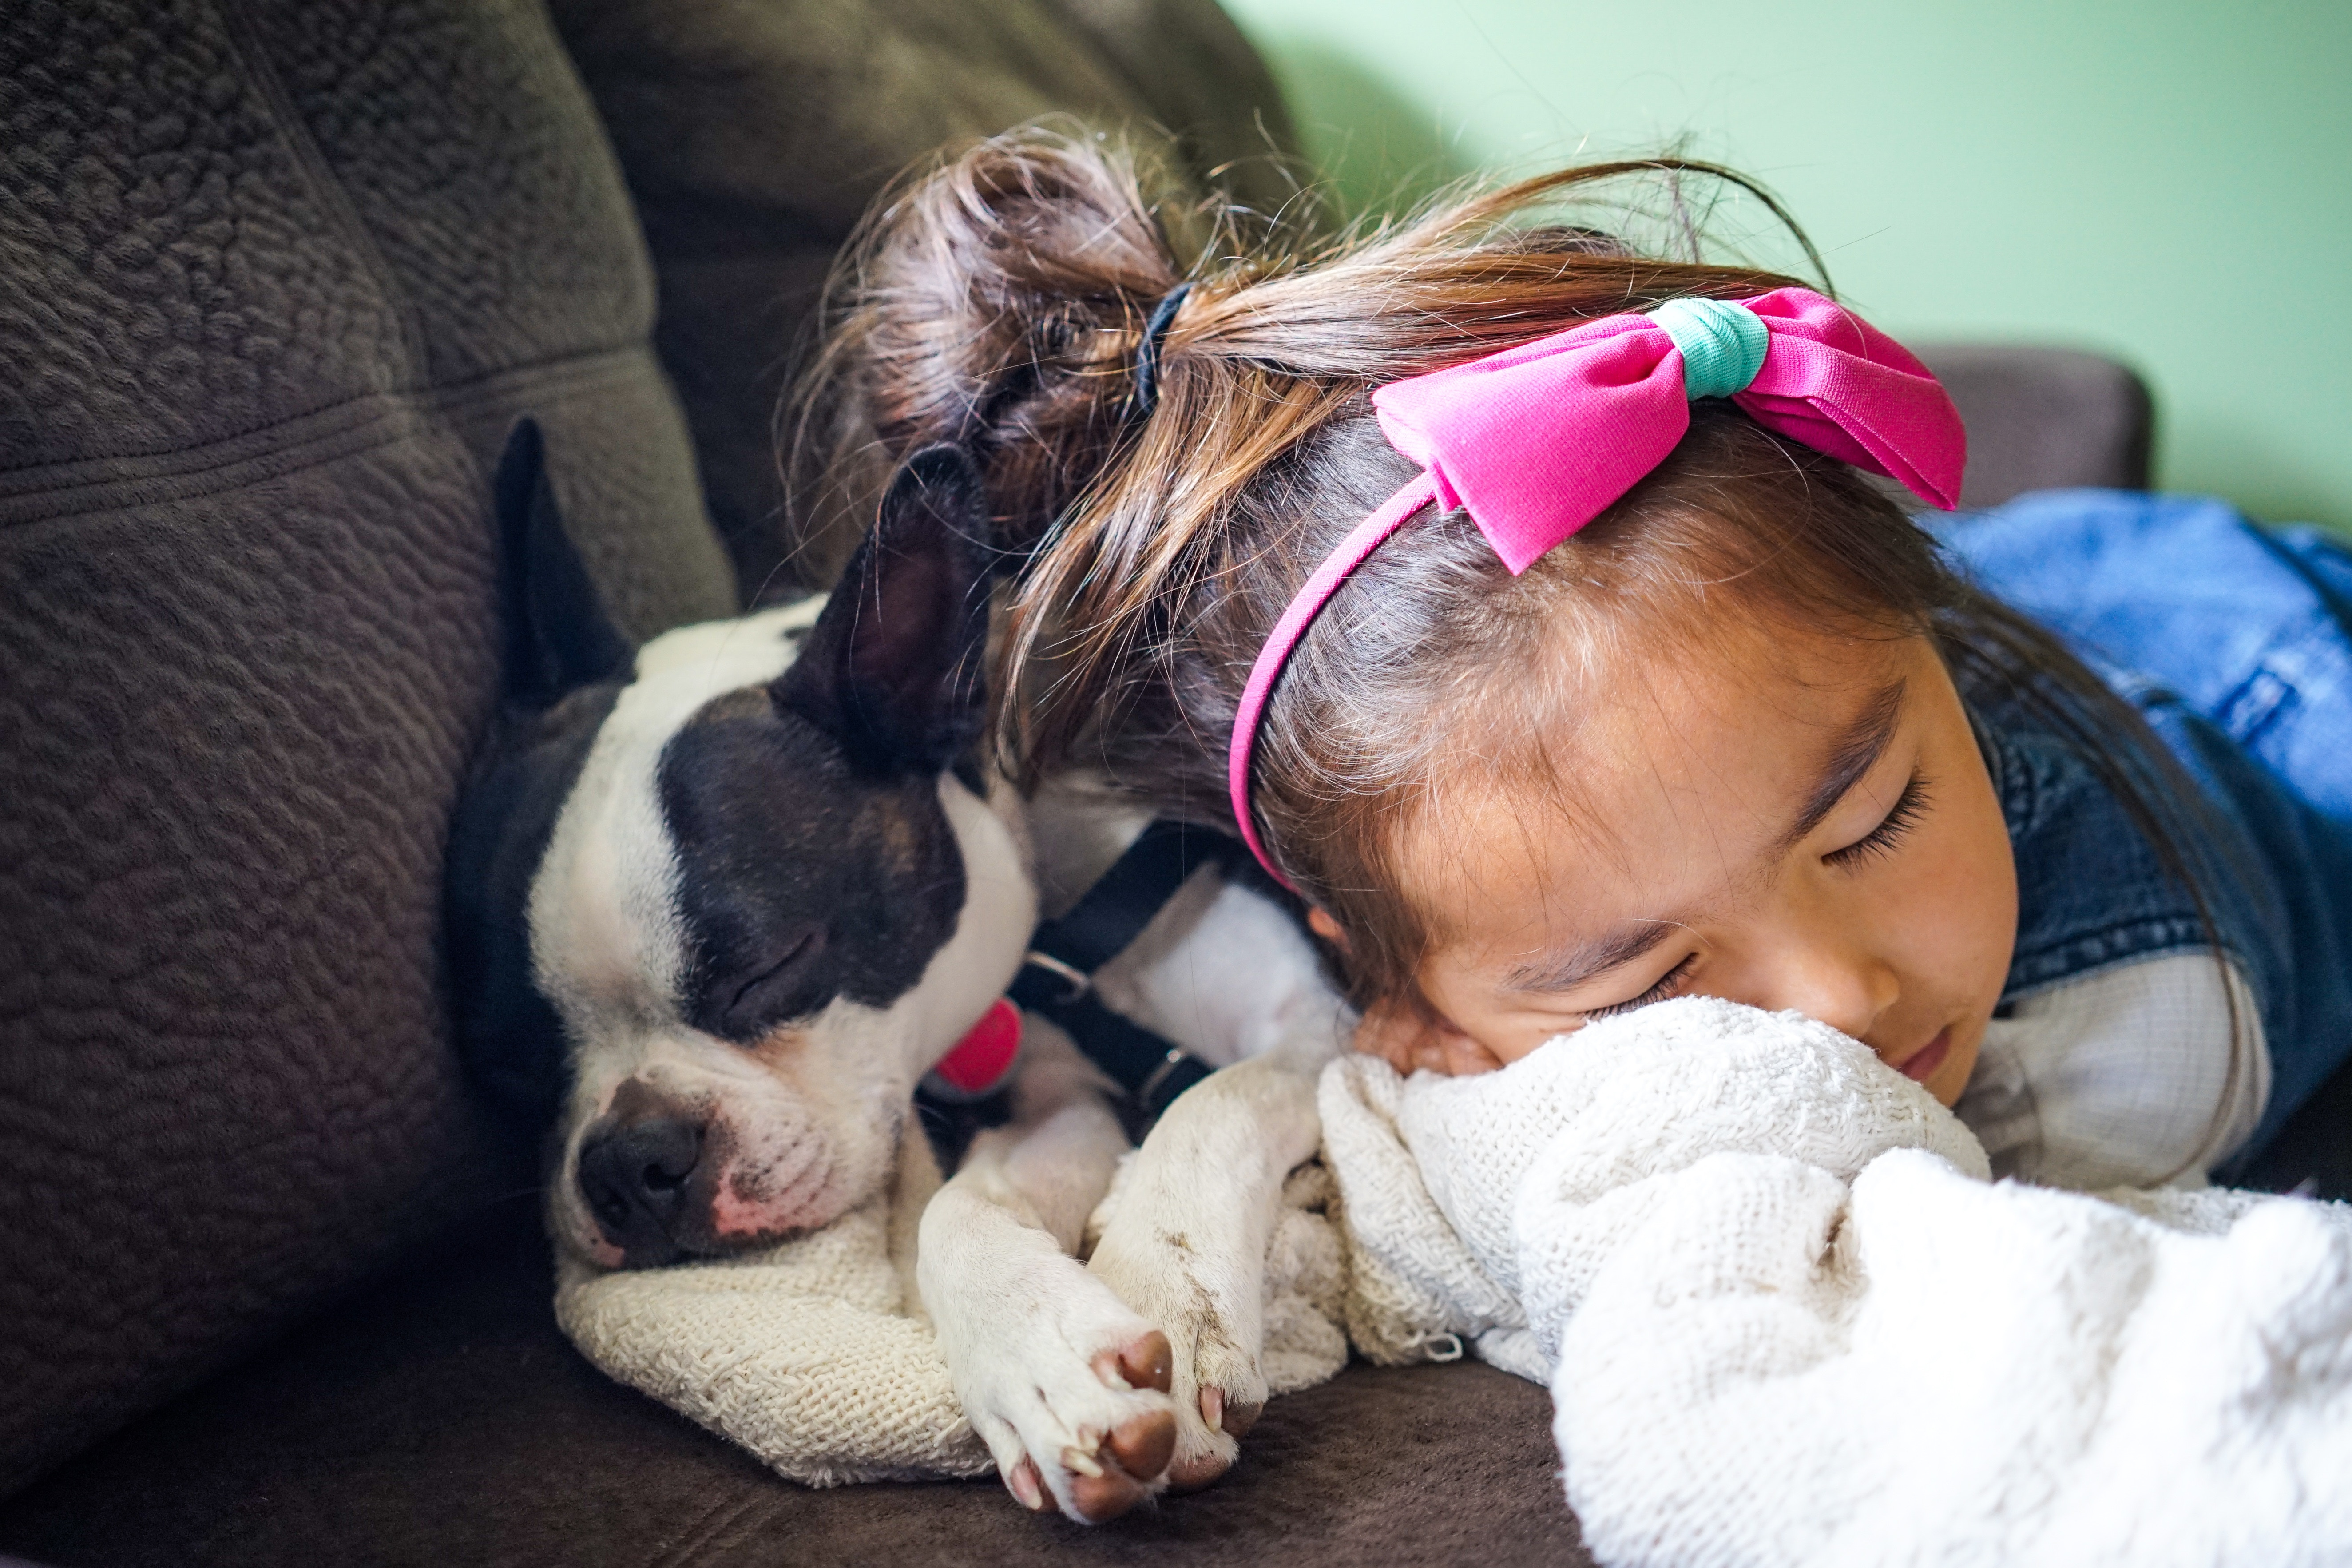 A tired girl and puppy sleeping together on a couch.